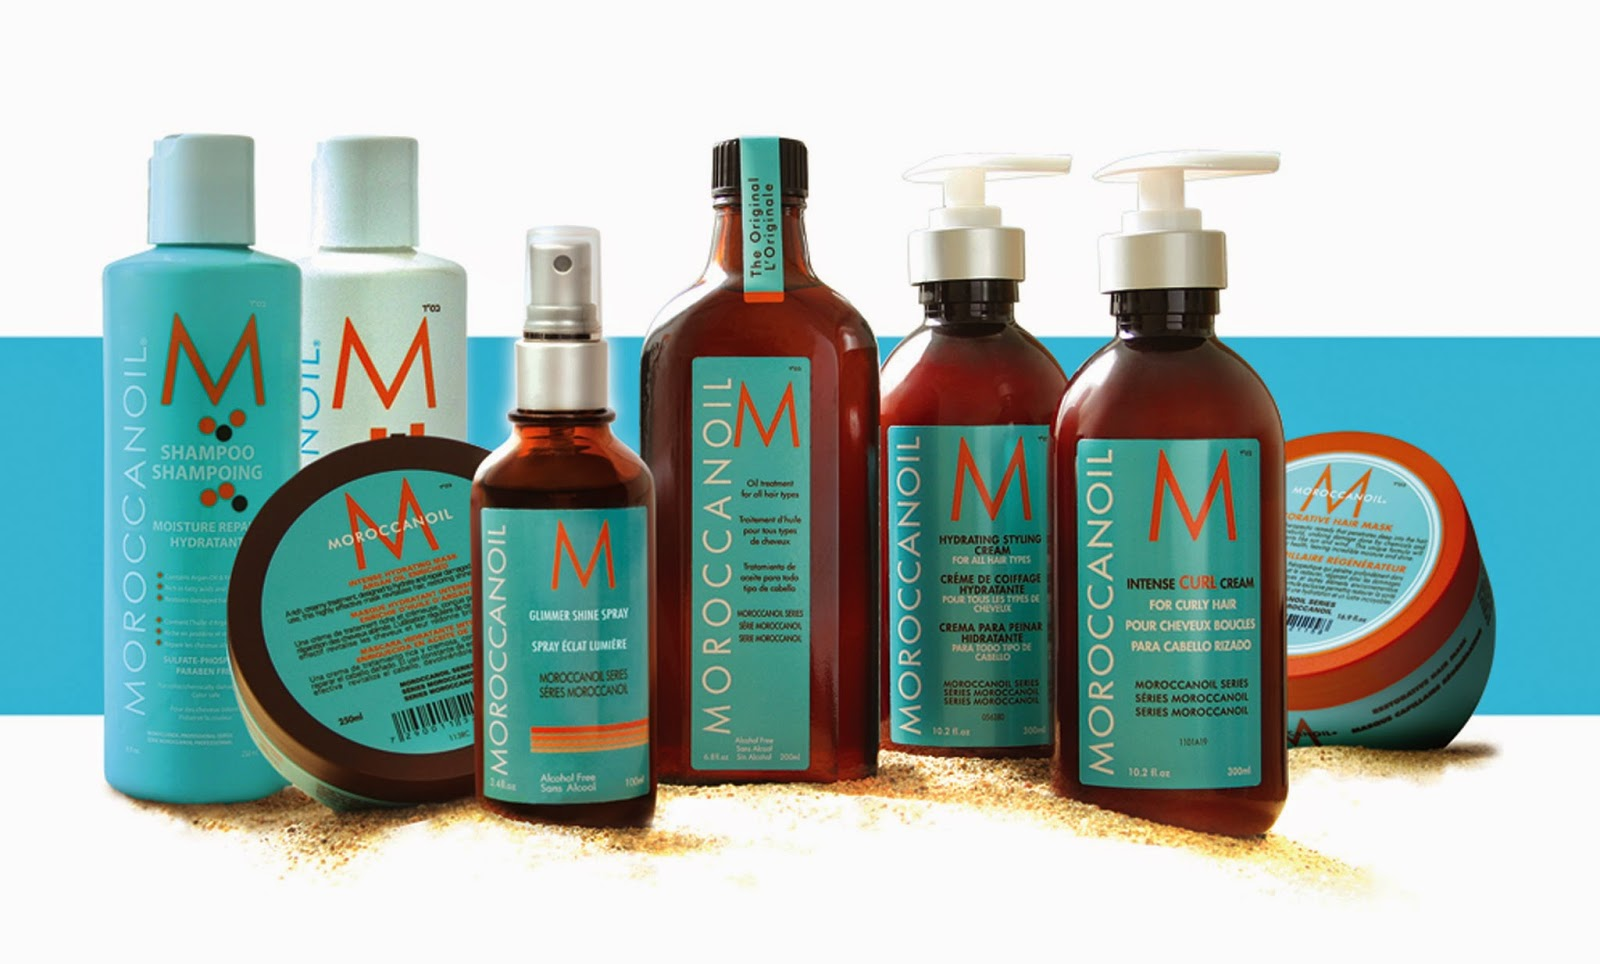 comprar moroccan oil 1 l amazon